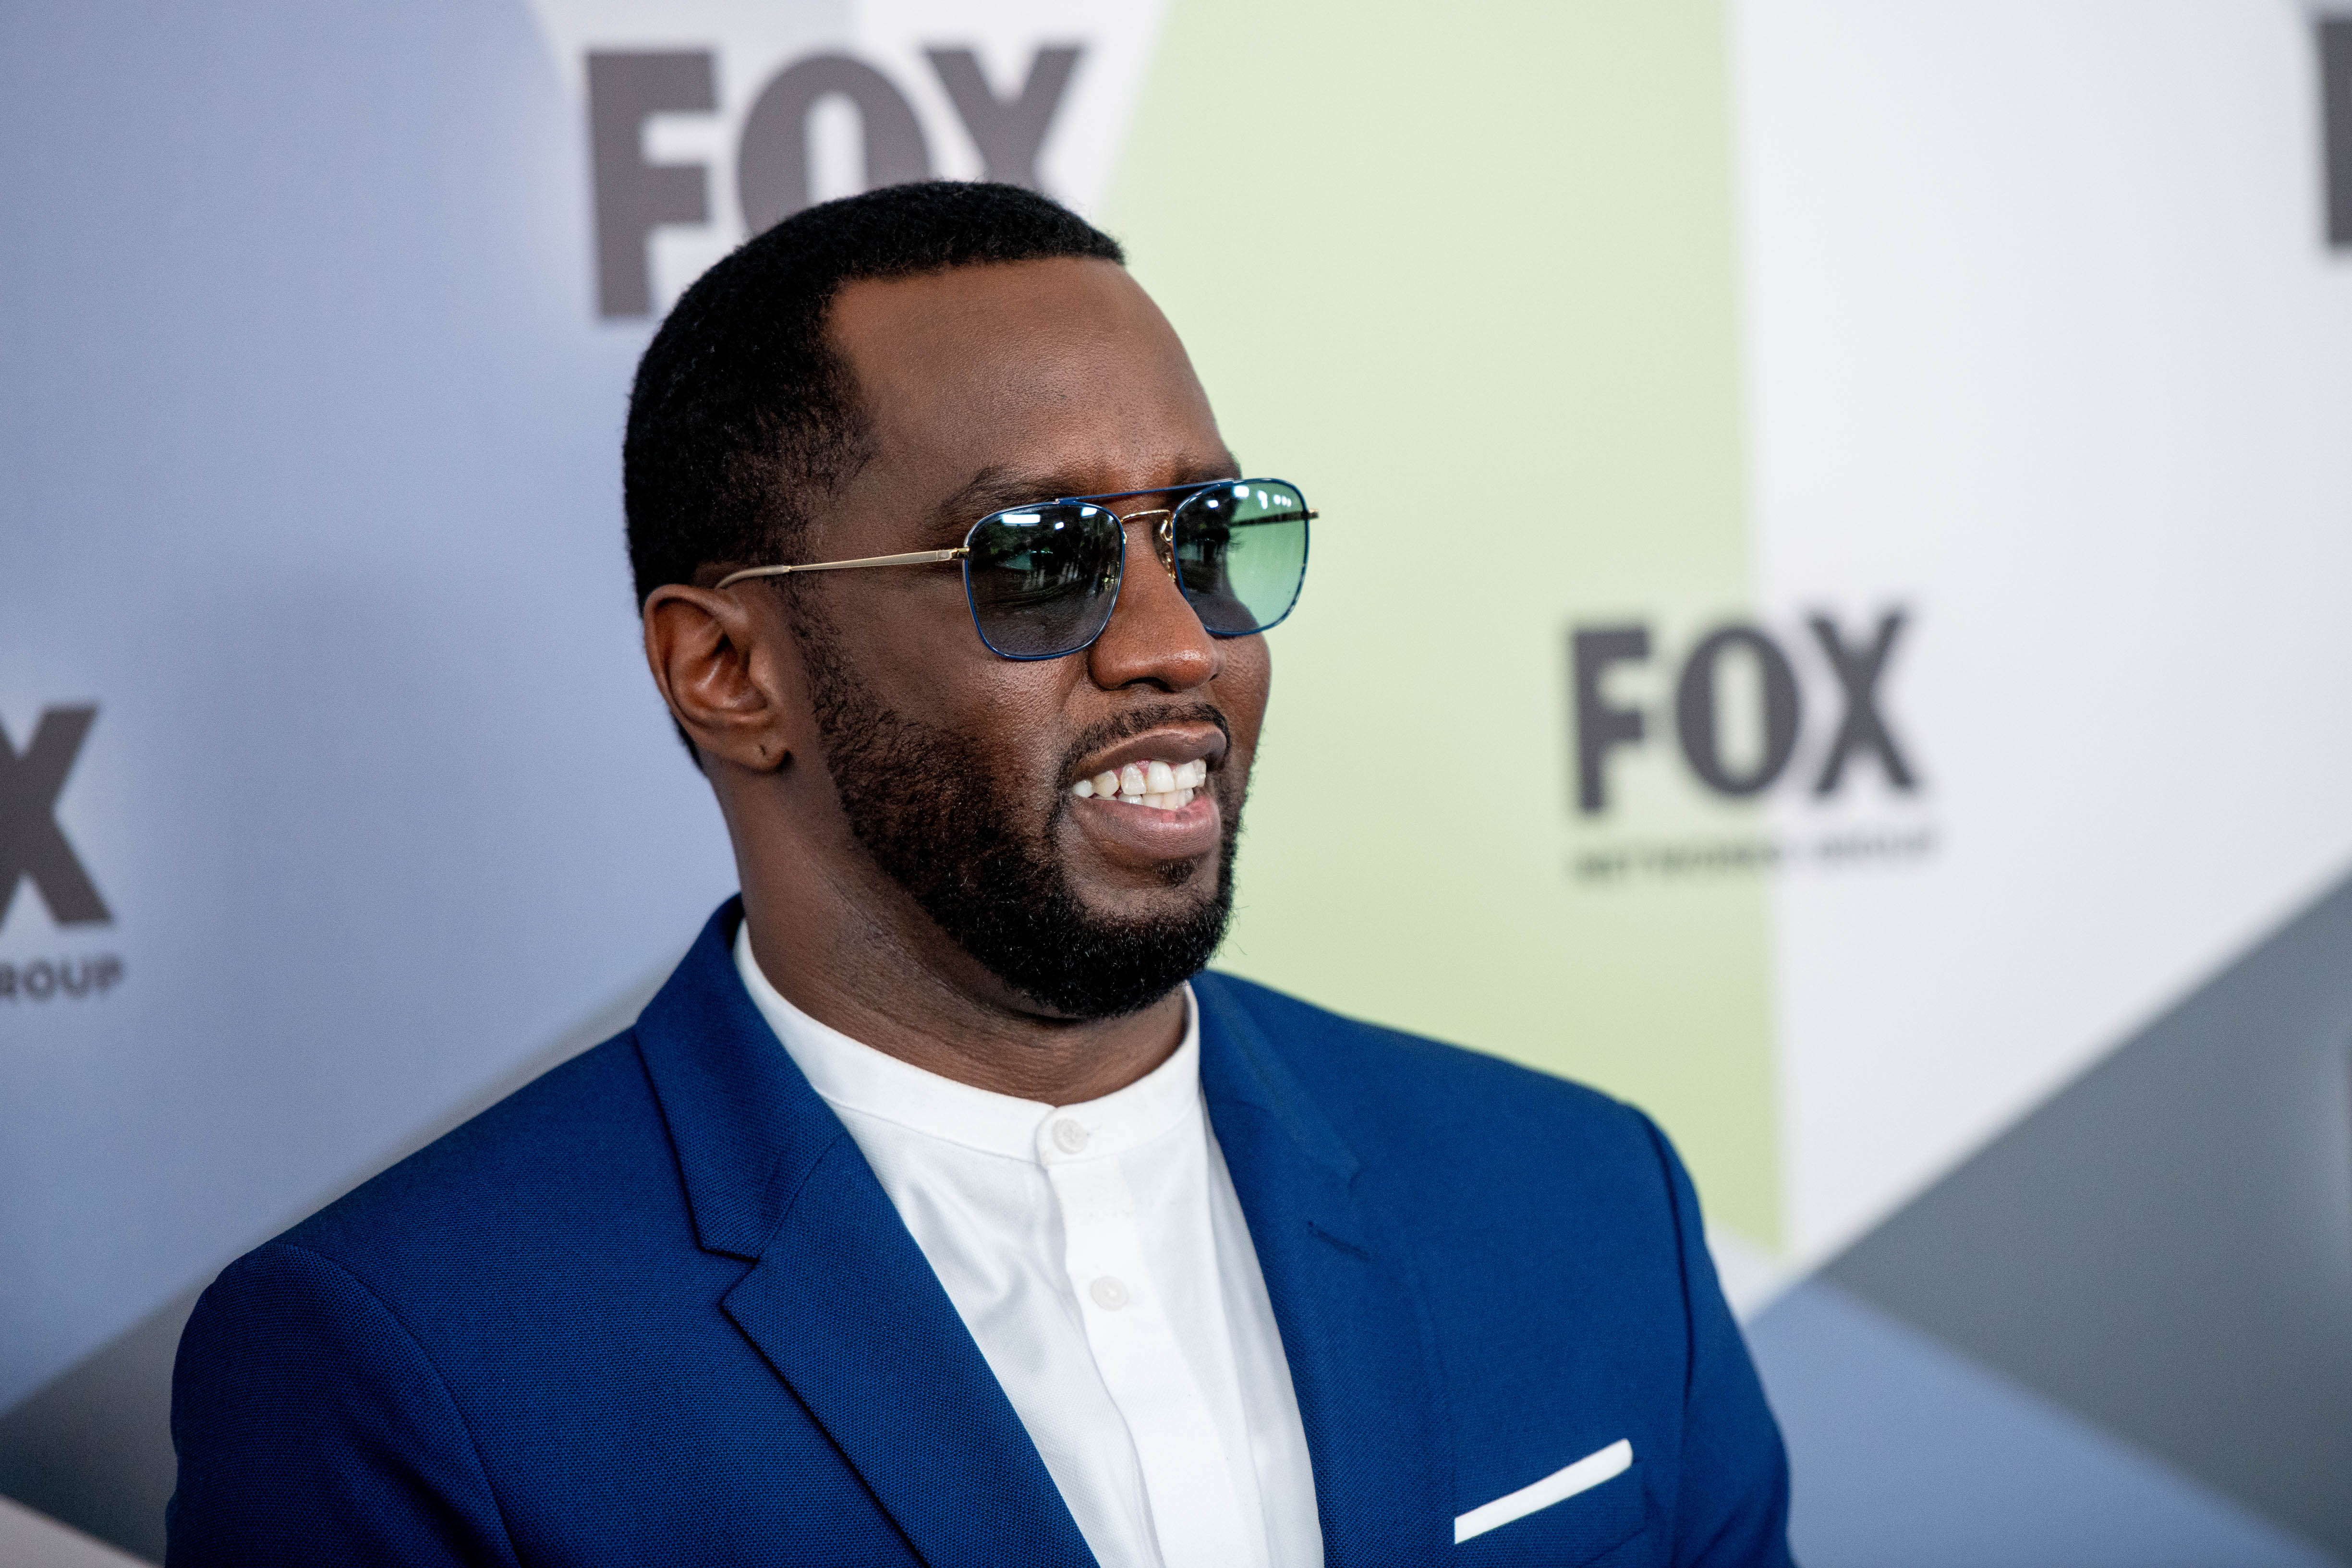 Sean 'Diddy' Combs at he 2018 Fox Network Upfront at Wollman Rink, Central Park on May 14, 2018 in New York City.| Source: Getty Images